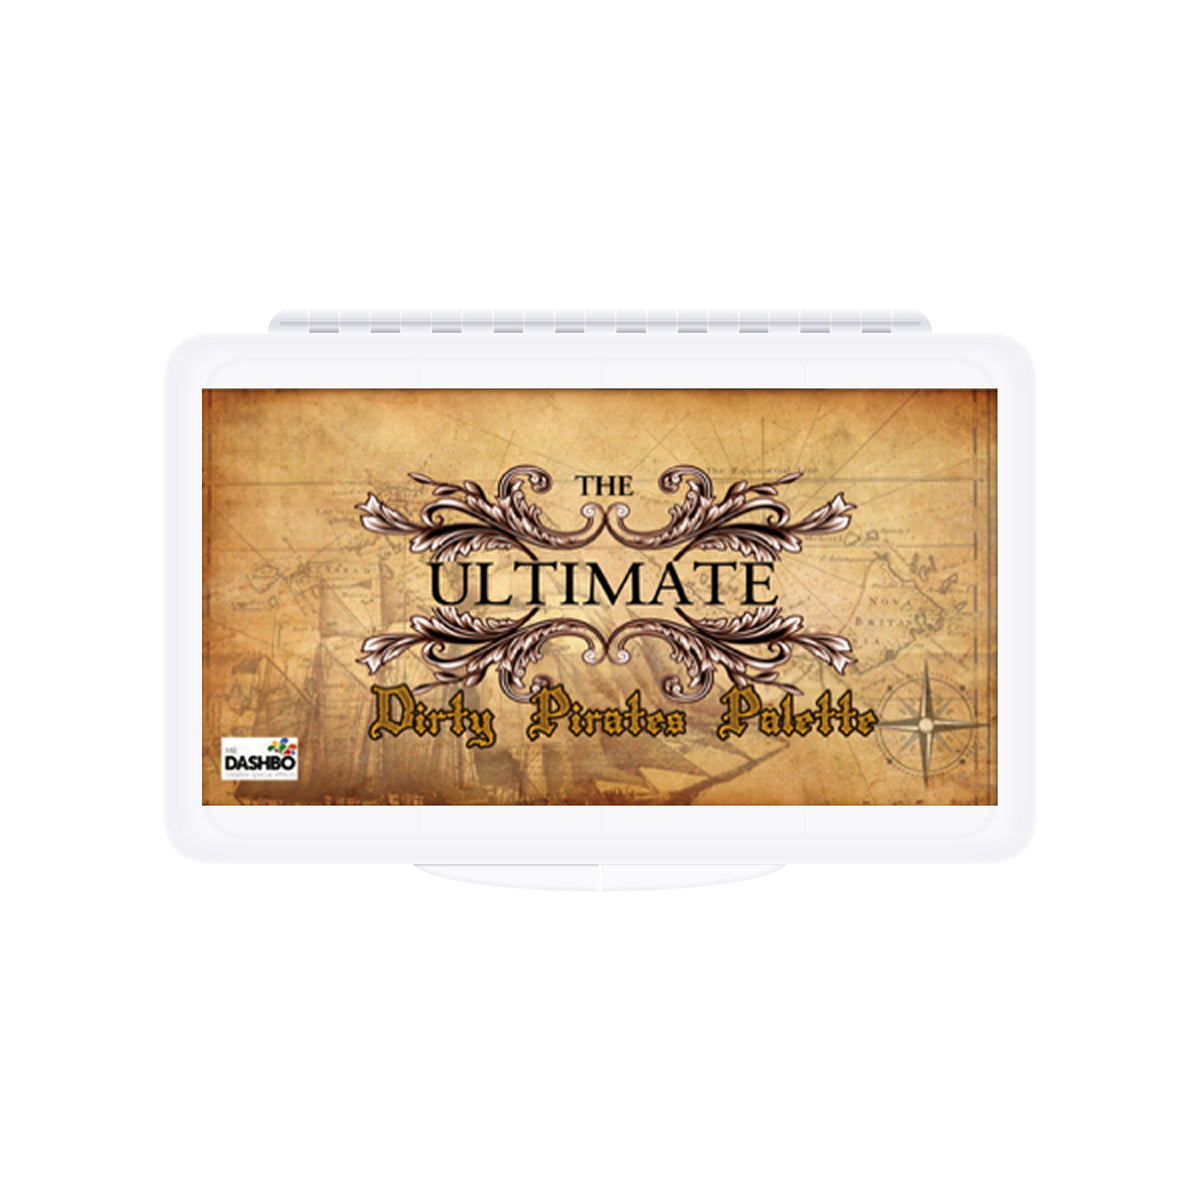 Dashbo The Ultimate 12 Colour Dirty Pirates Palette - Red Carpet FX - Professional Makeup